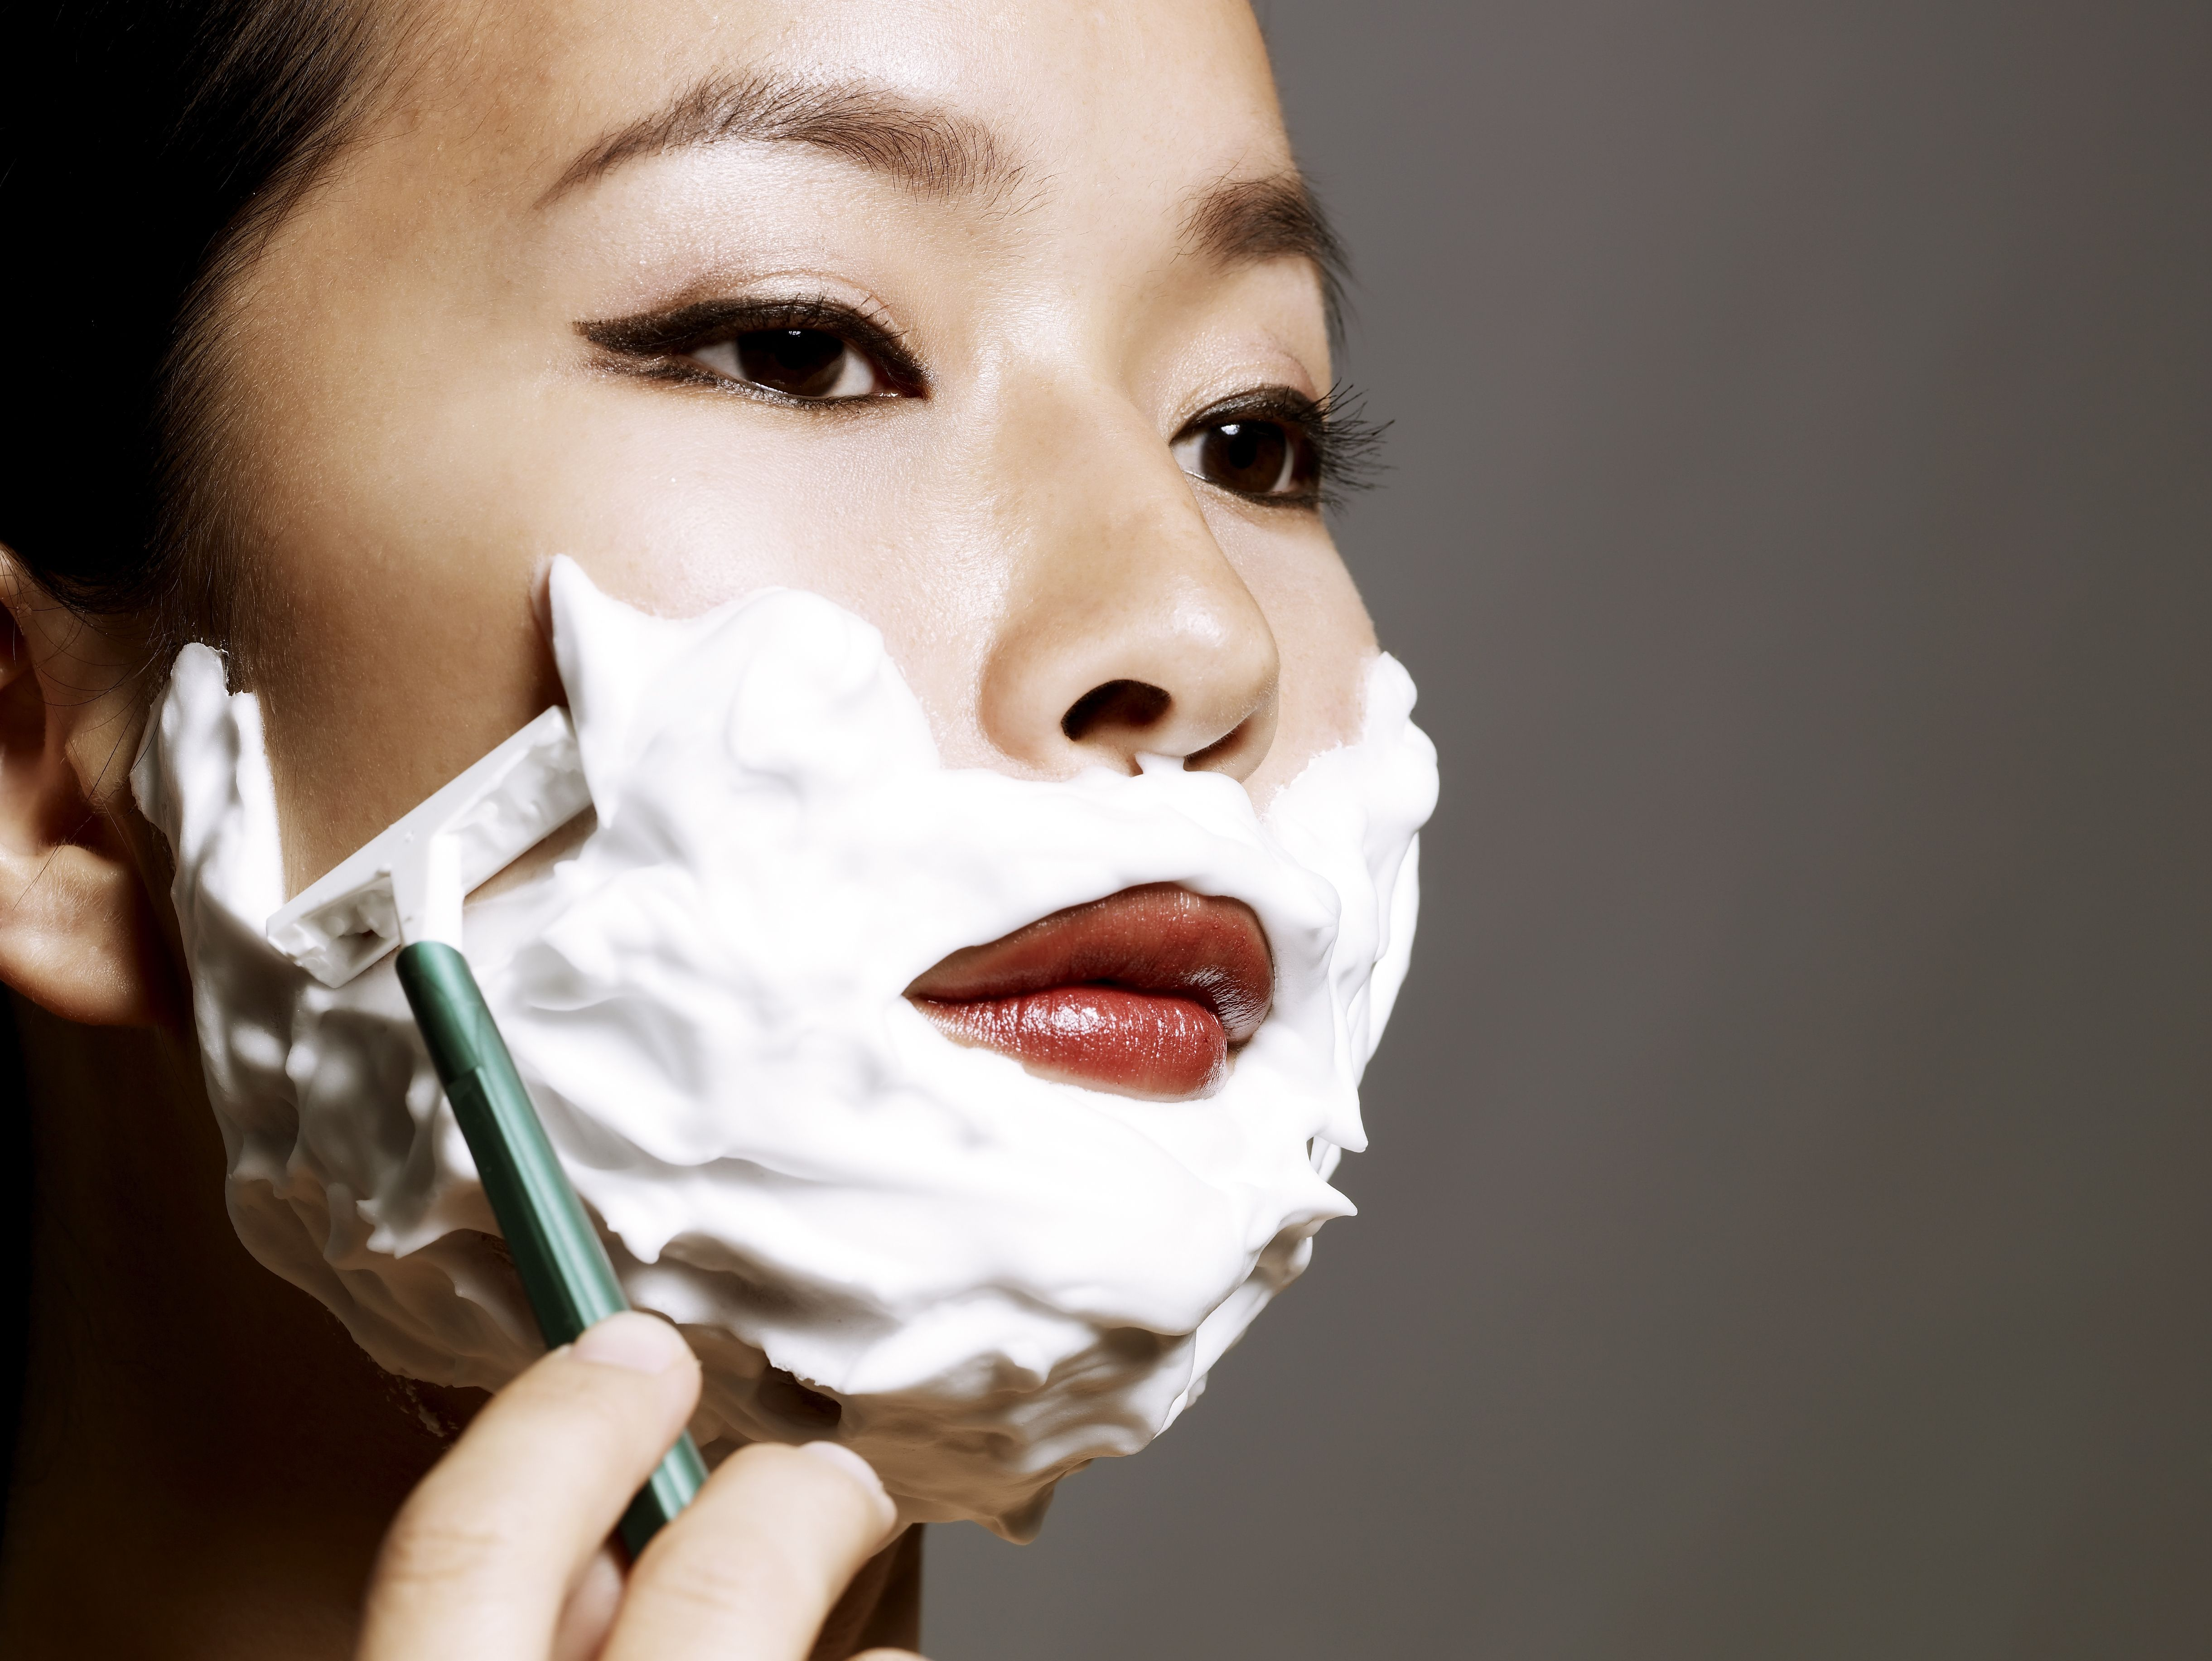 Face Shaving Beauty Routine Should You Shave Your Face